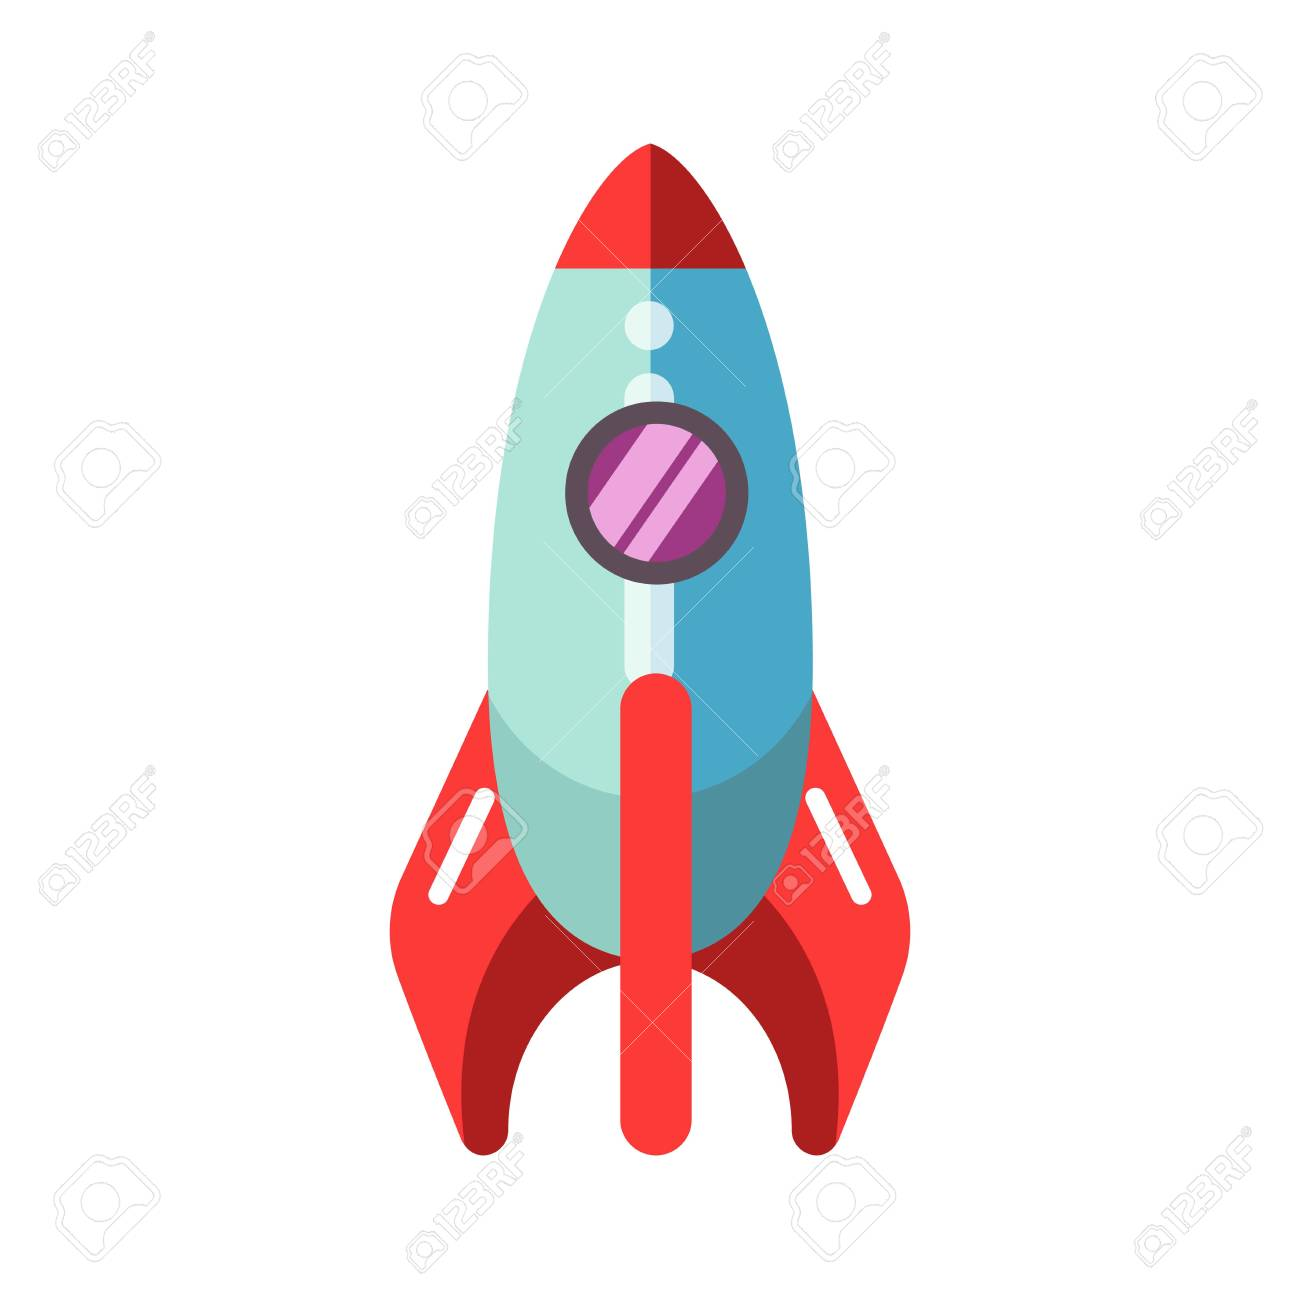 kid toy children plaything rocket spaceship vector icon royalty free rh 123rf com spaceship vector gif spaceship vector free download